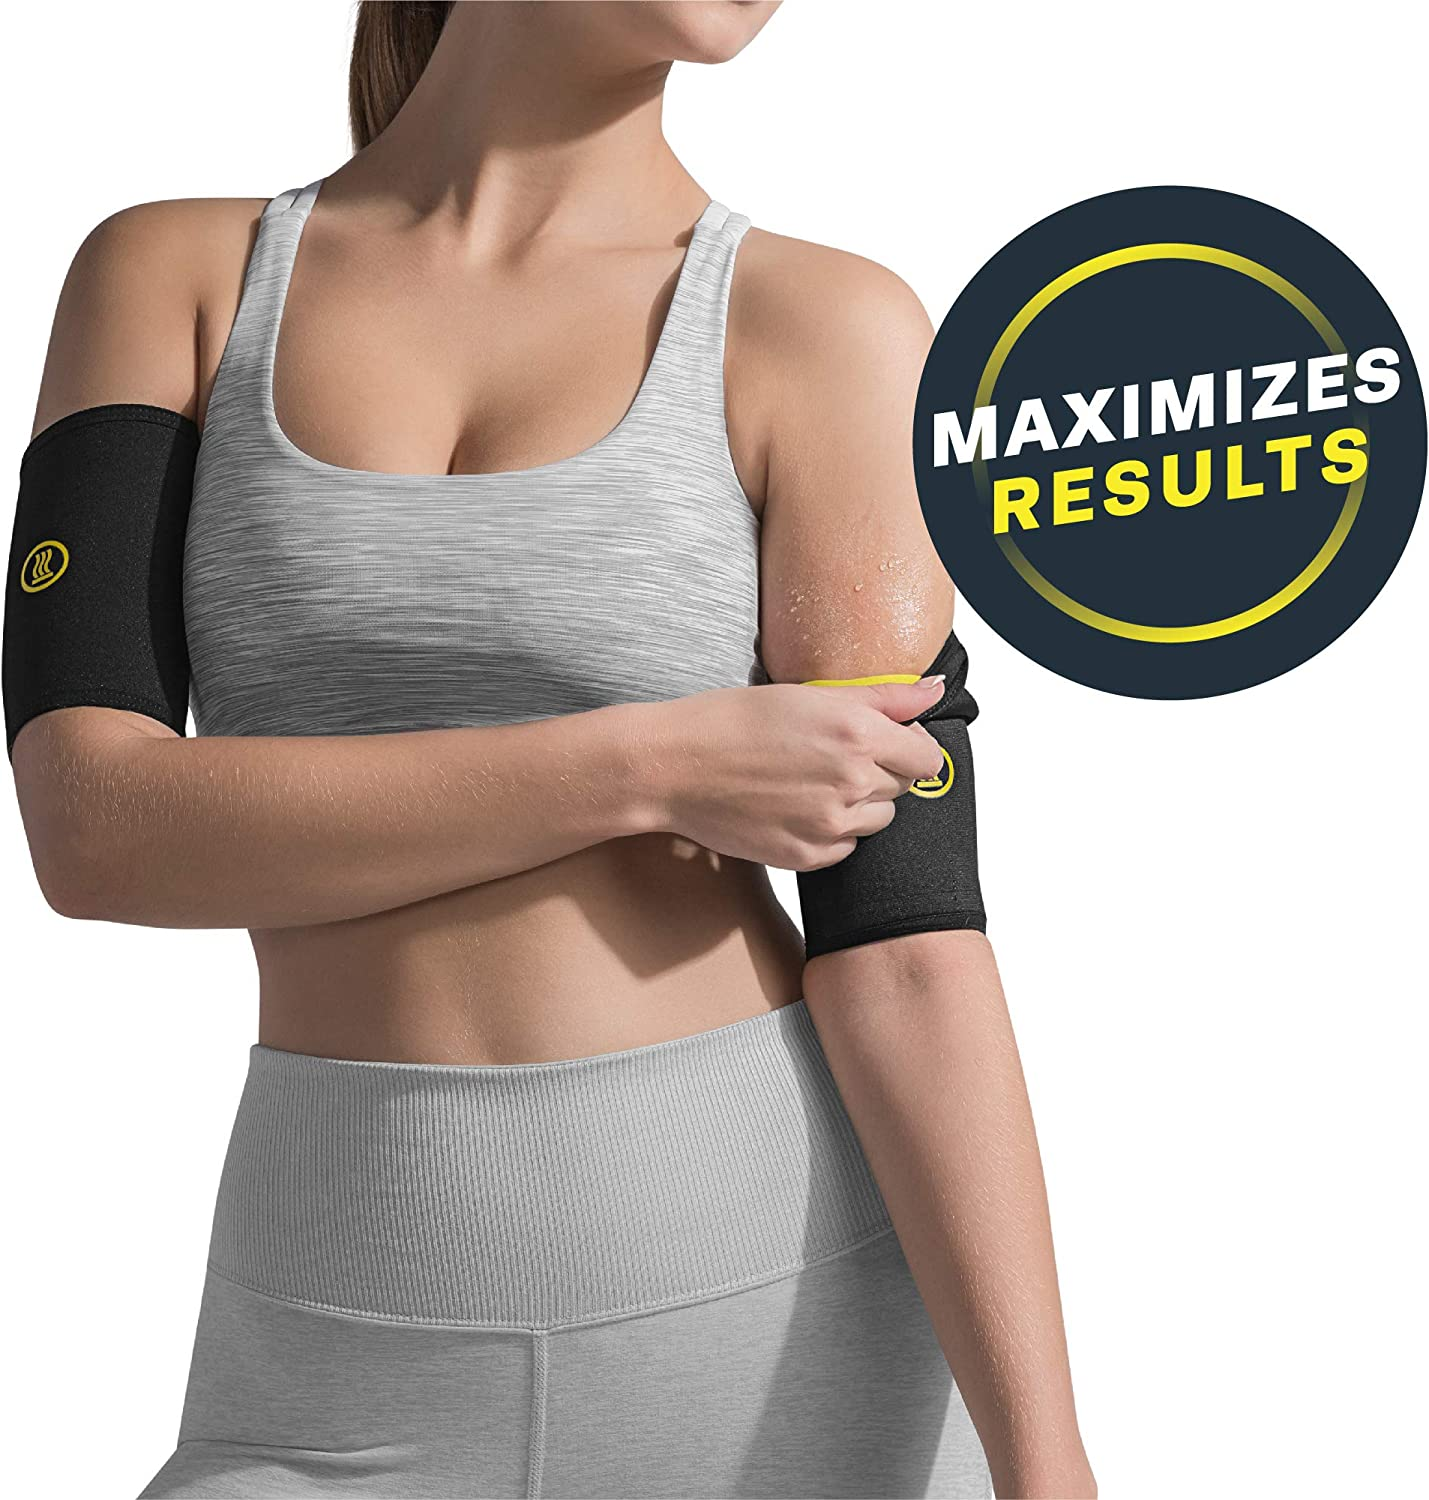 HOT SHAPERS Arm Sleeves Two Compression Sleeves for a Womens Workout to Lose Fat Bicep Trimmers and Slimmers Equipment Accessories for Weight Loss Gym Exercises